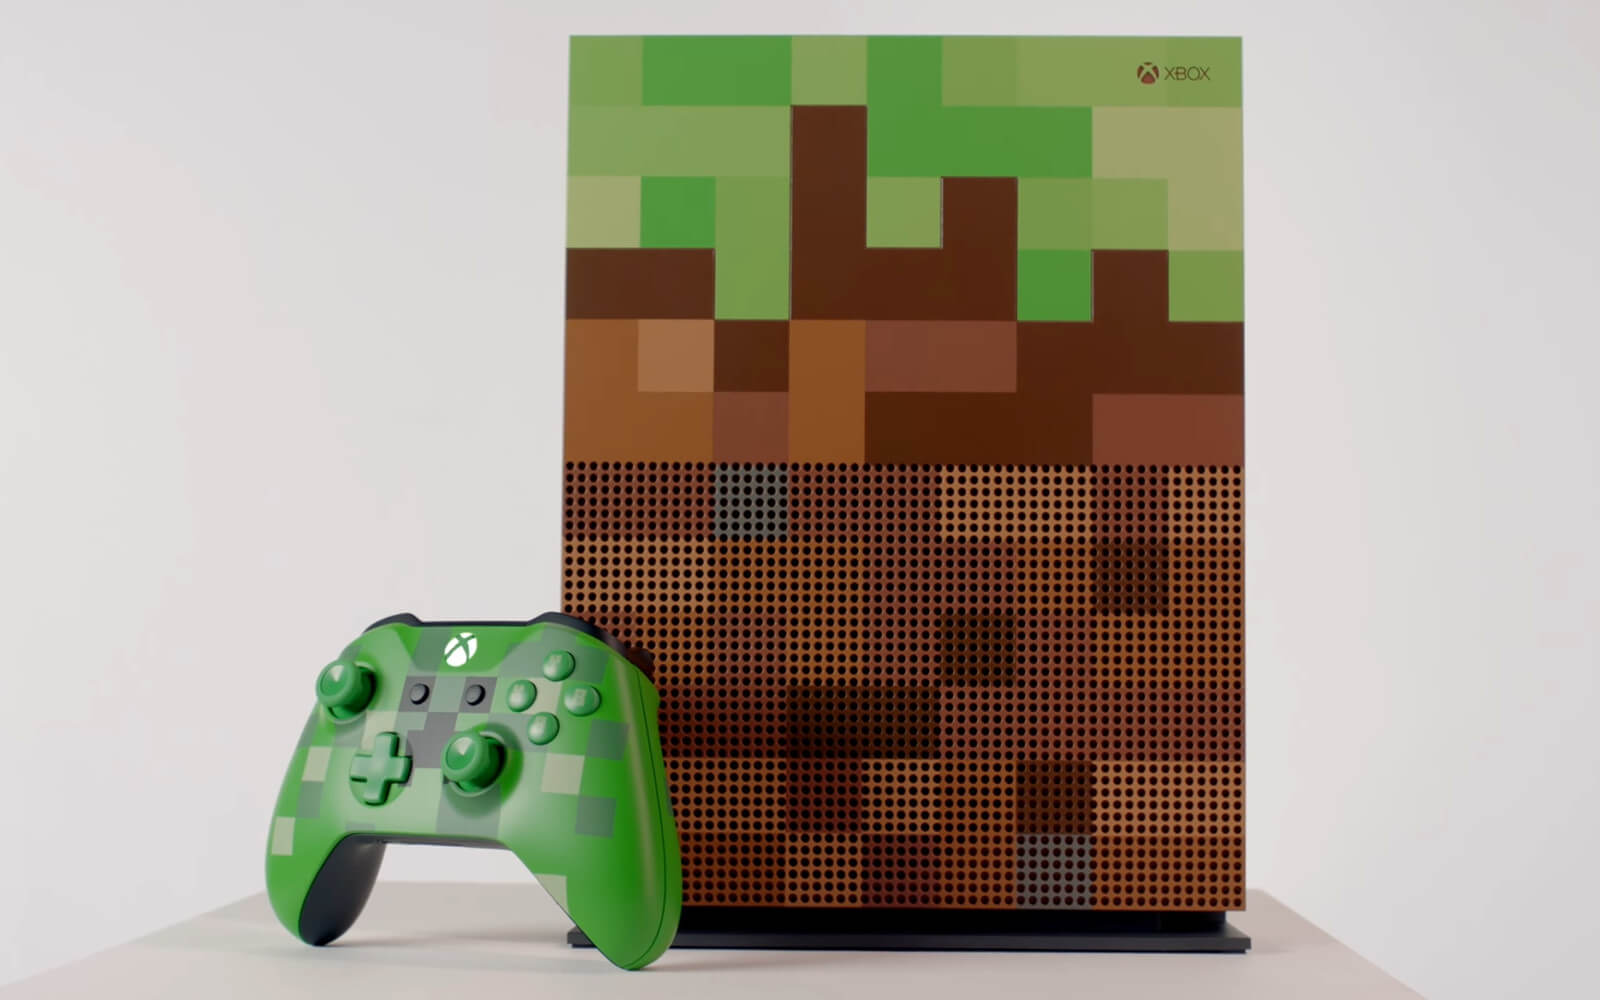 Minecraft Limited Edition Xbox One S